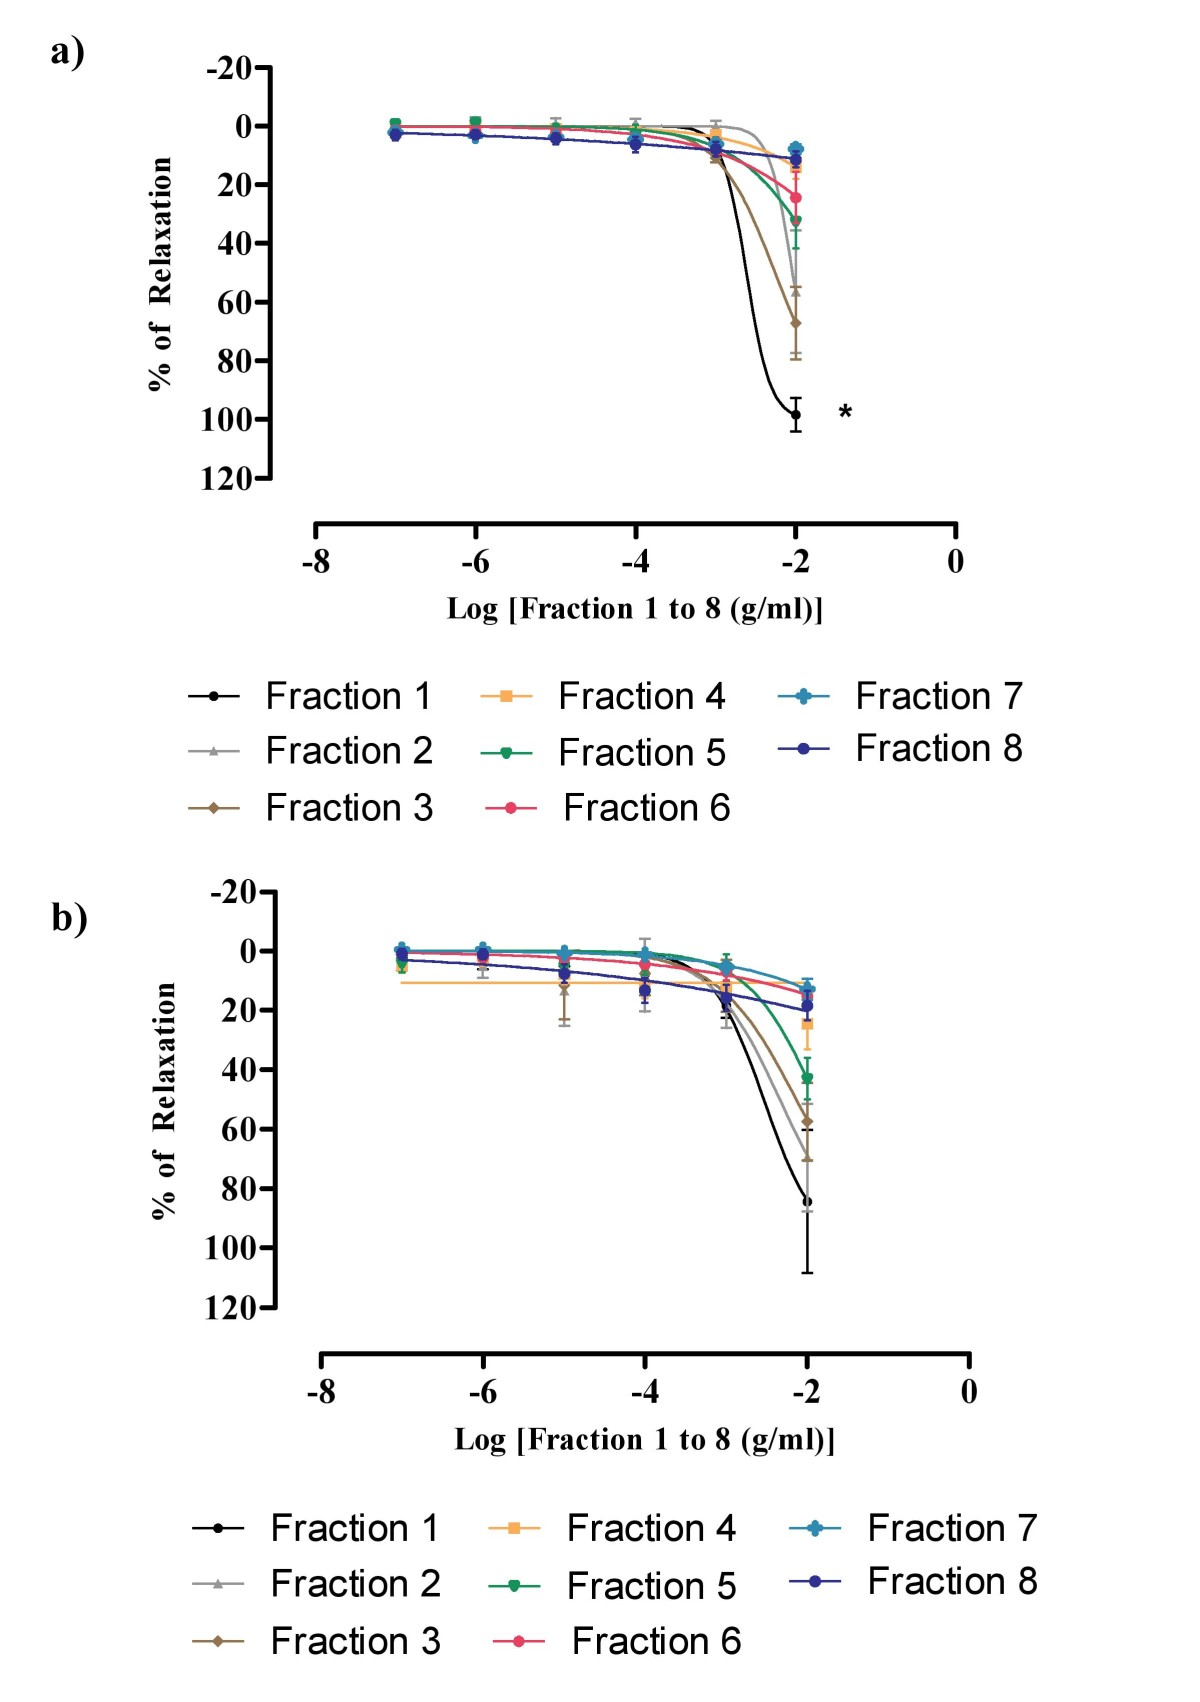 https://static-content.springer.com/image/art%3A10.1186%2F1472-6882-13-188/MediaObjects/12906_2013_Article_1440_Fig3_HTML.jpg